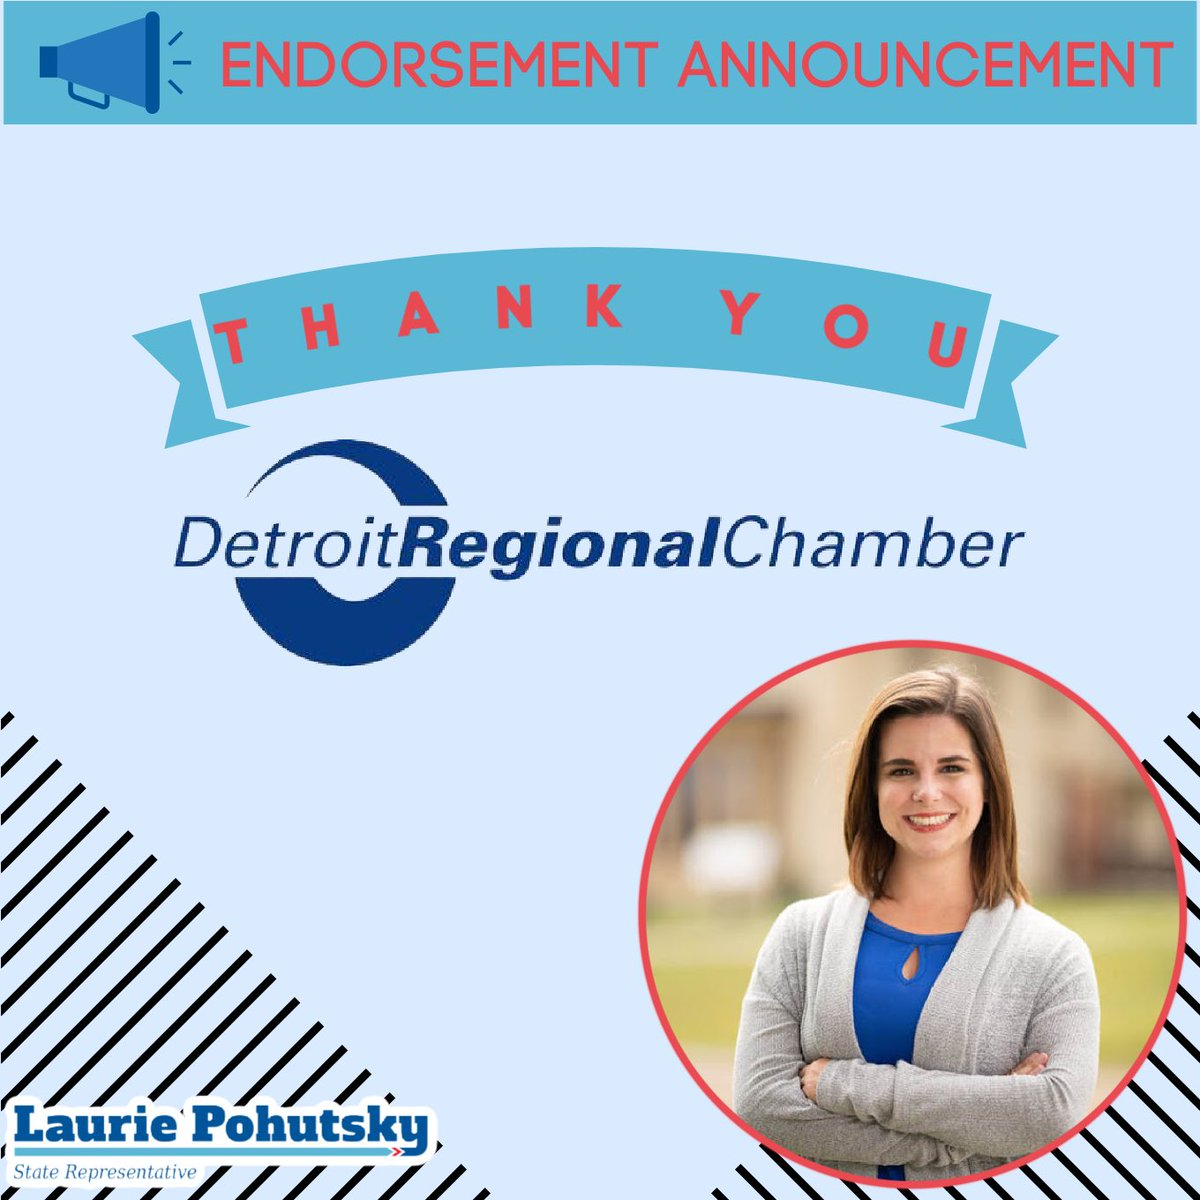 RT @lpohutsky19: I'm thrilled to have earned the endorsement of the @DetroitChamber for my re-election!